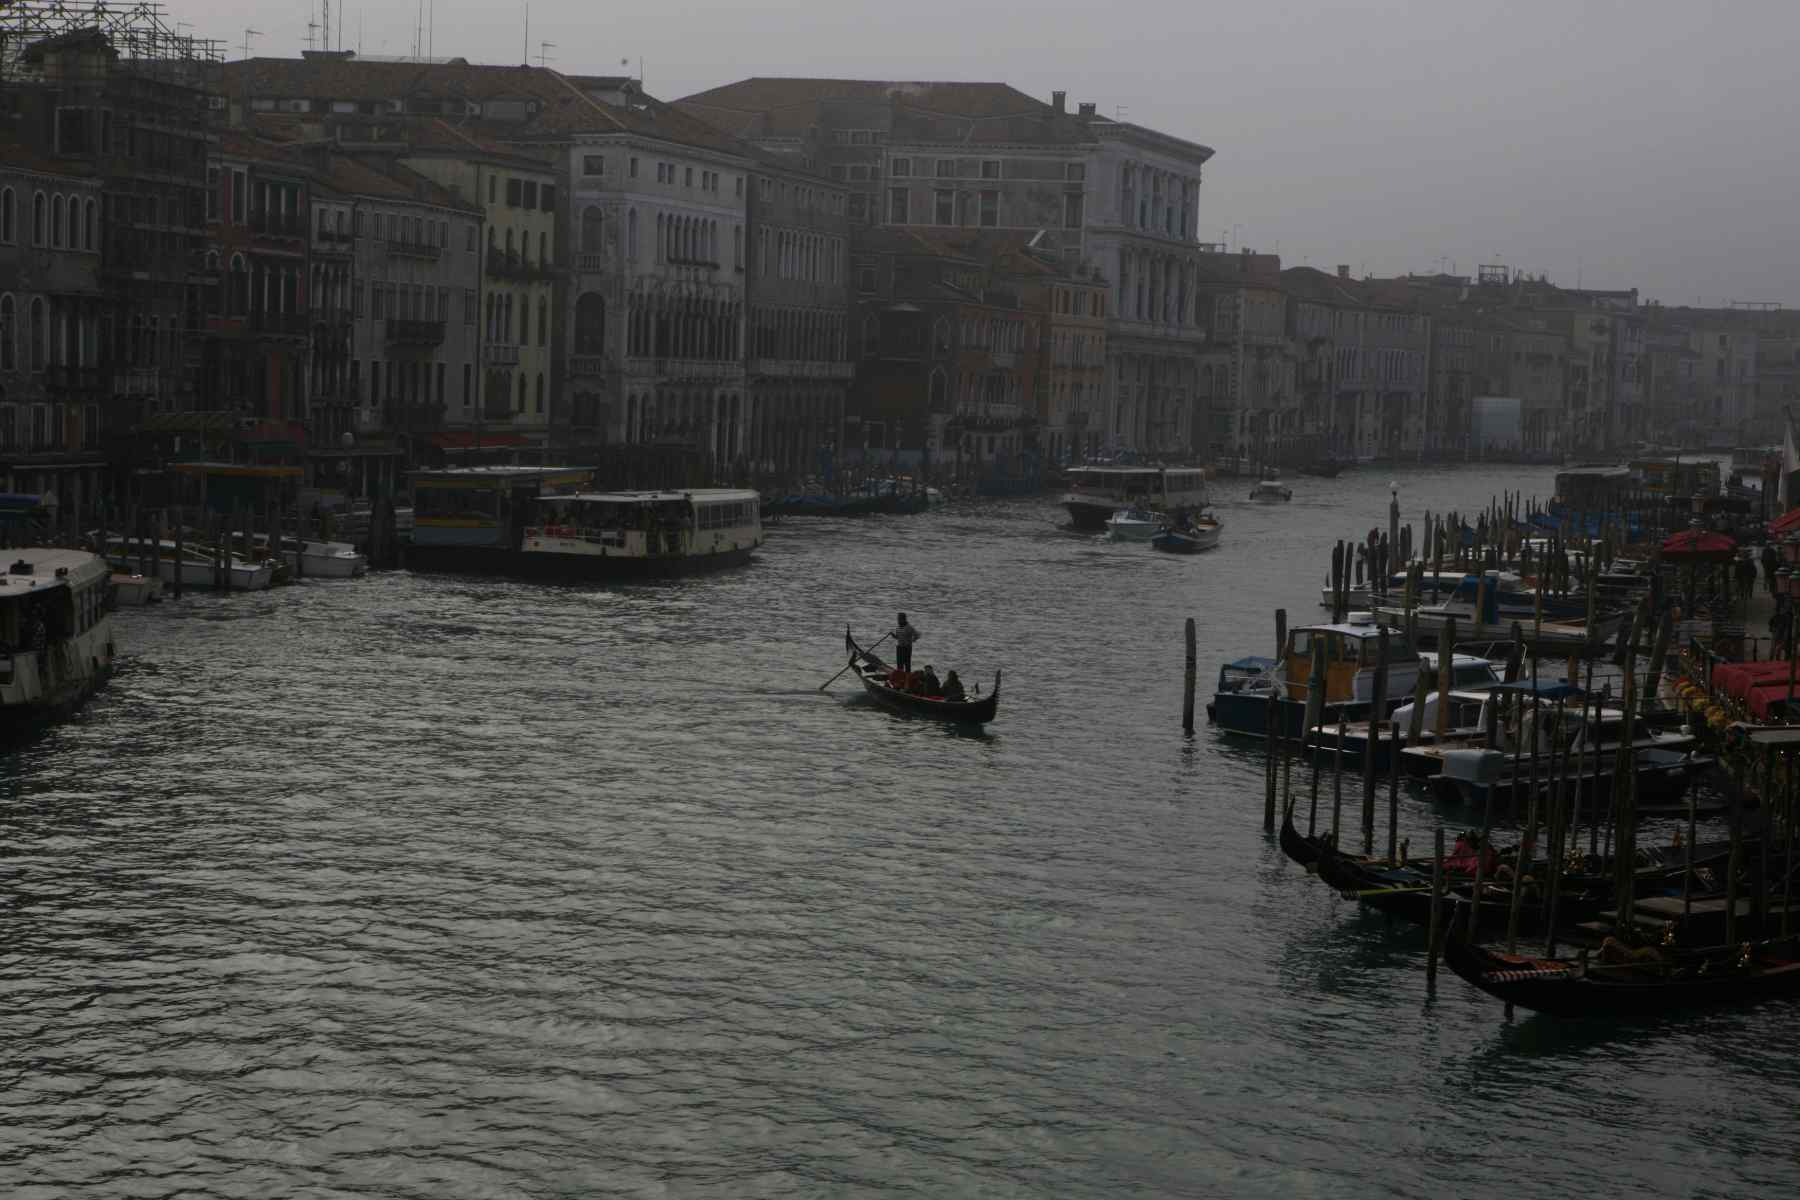 Visit Venice in winter, and one has the most romantic city in the world to oneself, give or take a few tourists. Gone is scorching sunshine, and mass crowds of clicking cameras. In come skies of alabaster stretched over lagoons and canals the colour of milky jade, as mist and fog cloak the city in a mysterious mask. Ethereal, enchanting, more fairy tale than ever.